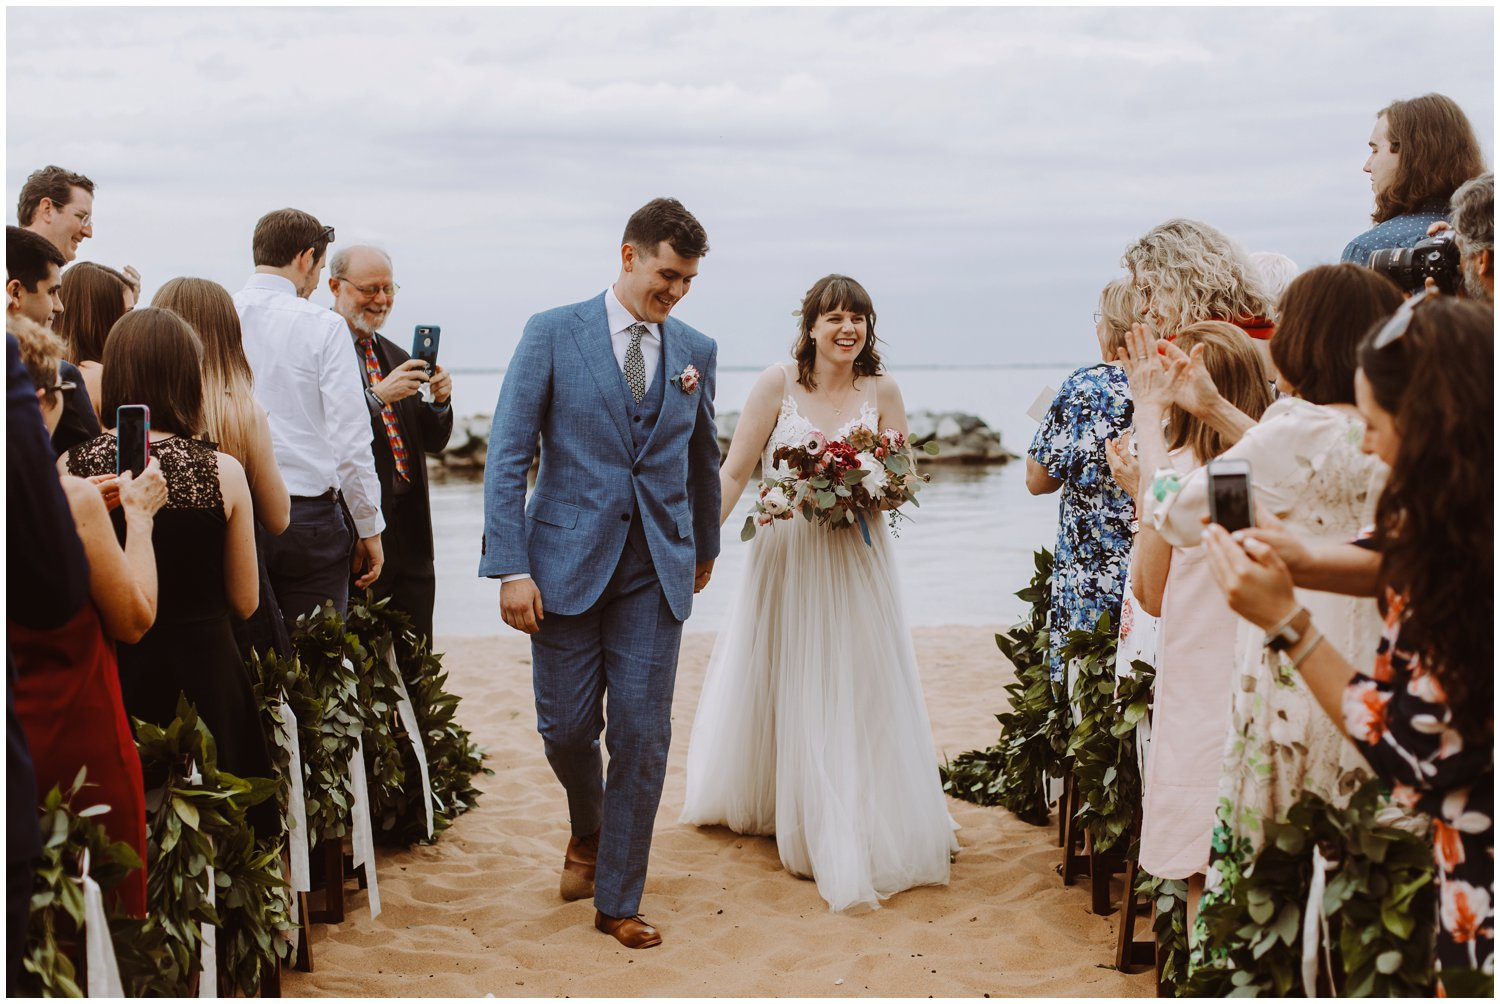 intimate beach wedding ceremony Annapolis wedding photographer